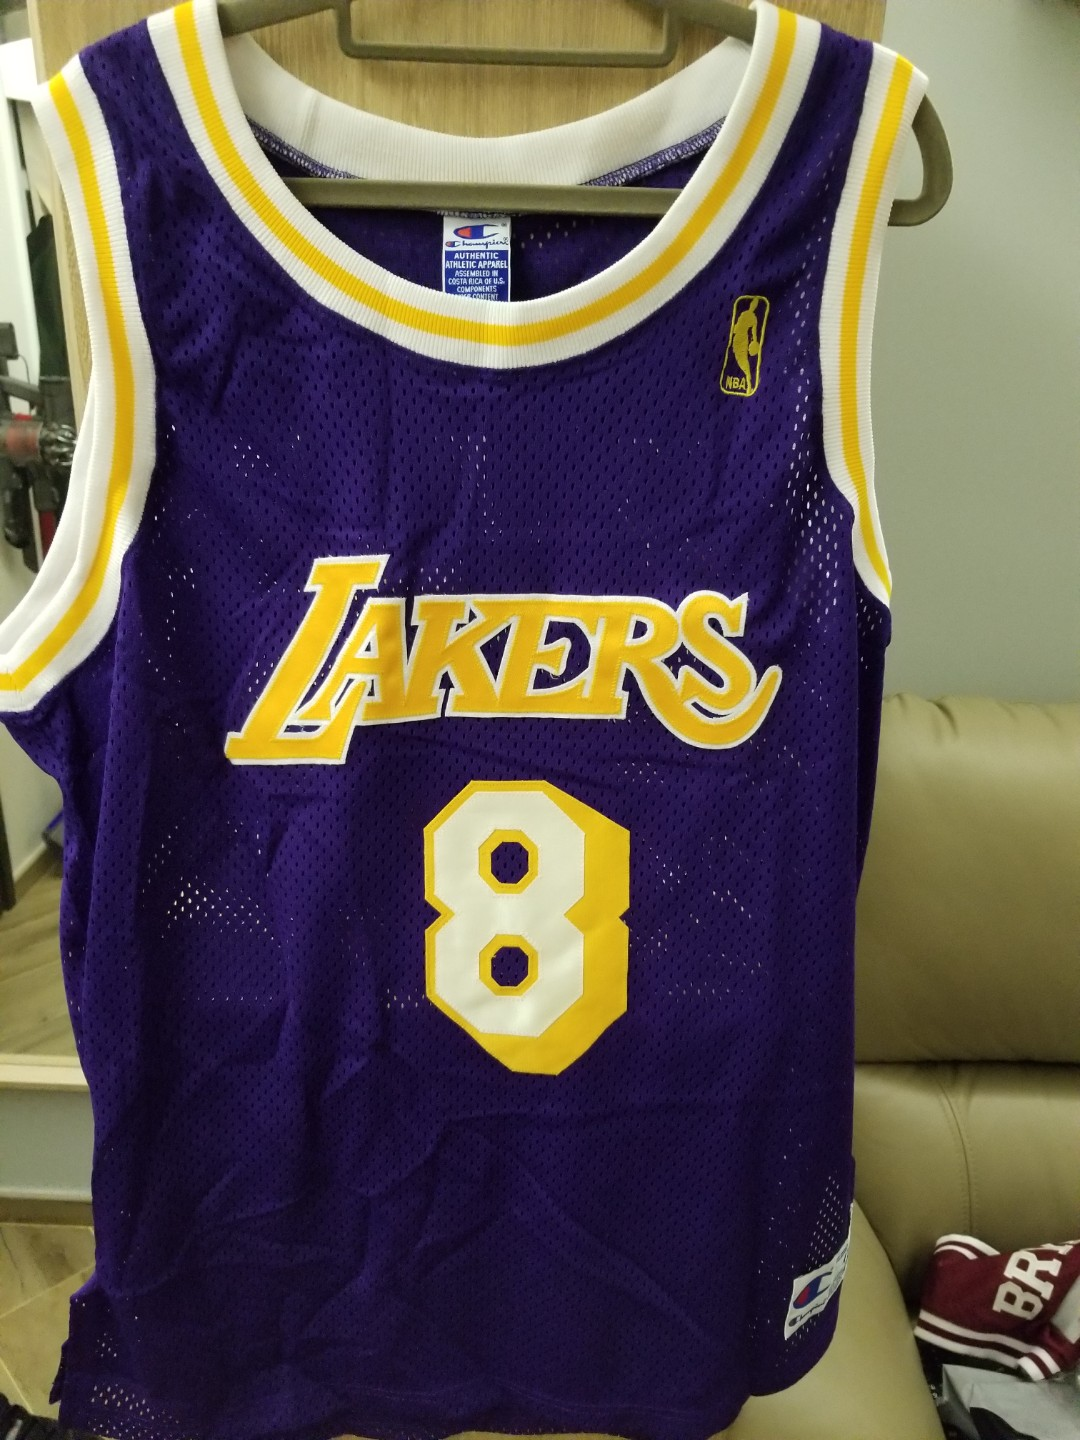 separation shoes 2dfe9 eb7ef 95% new Champion Kobe Bryant authentic jersey size 44